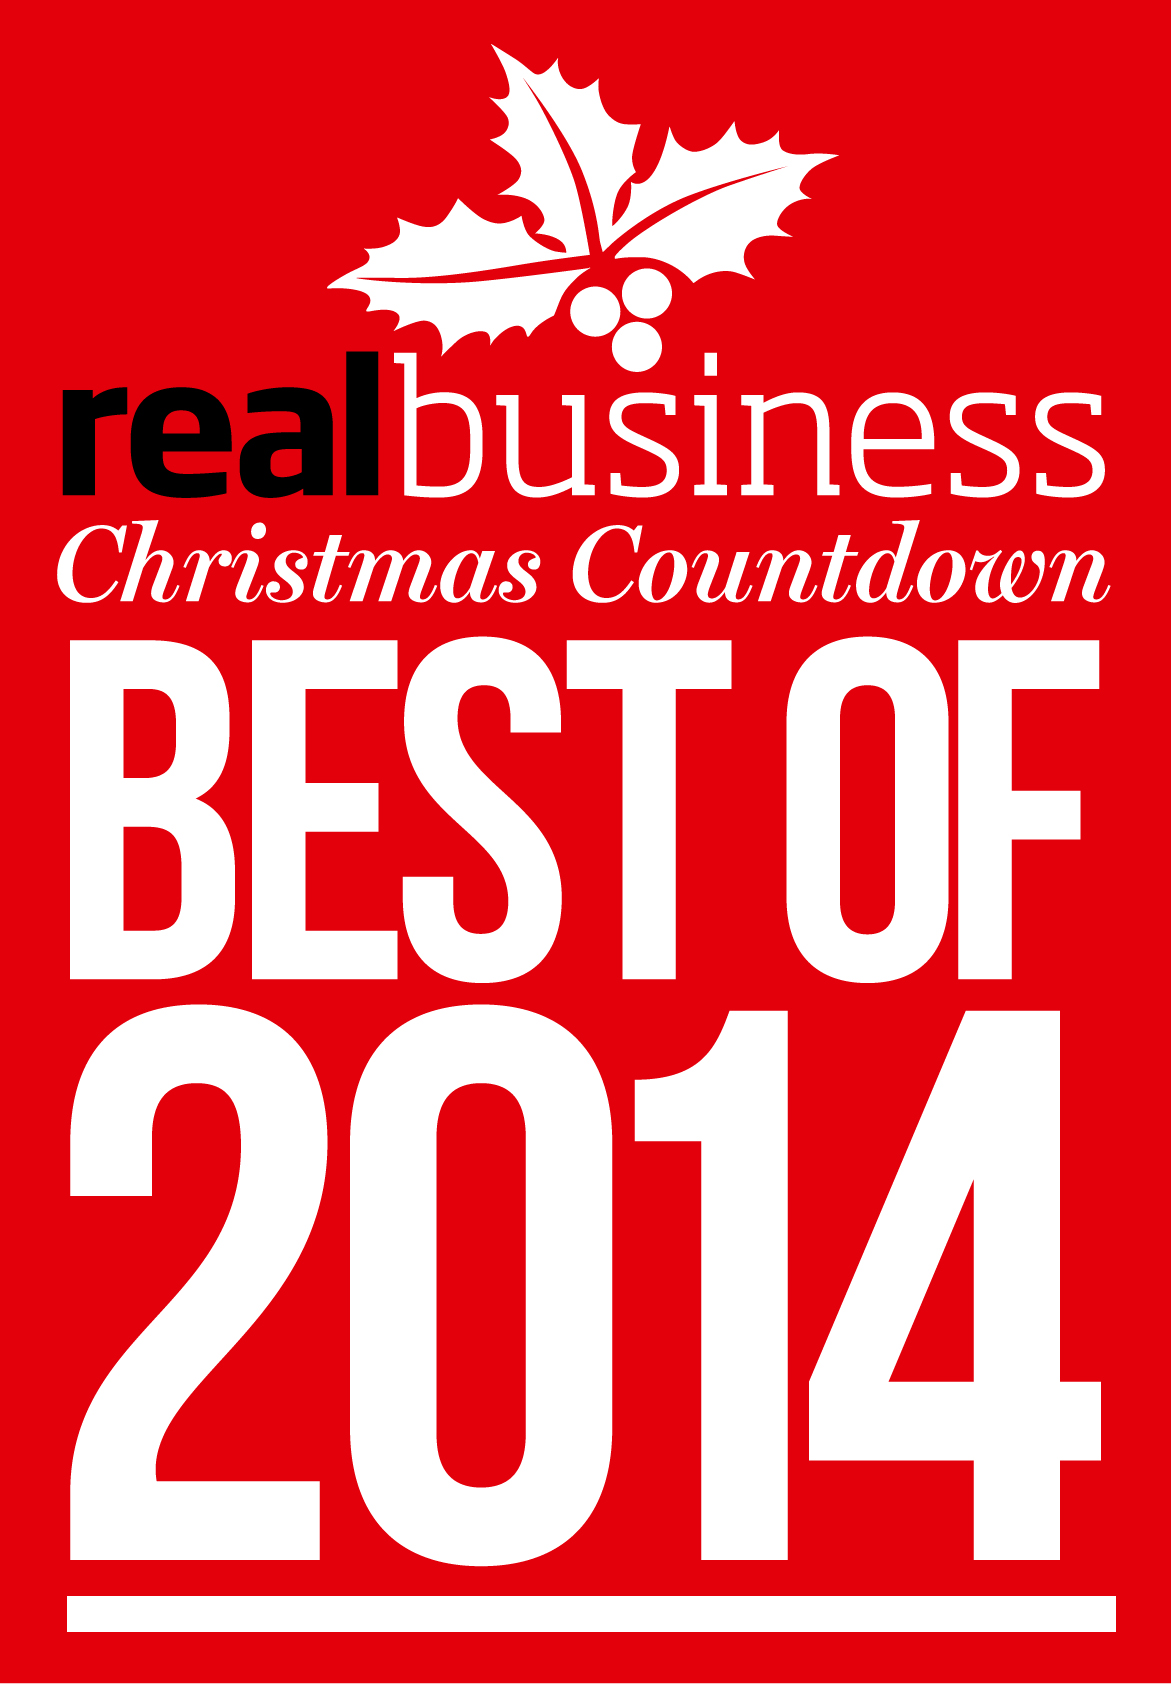 Real Business Christmas Countdown: The Best of 2014: 4 December